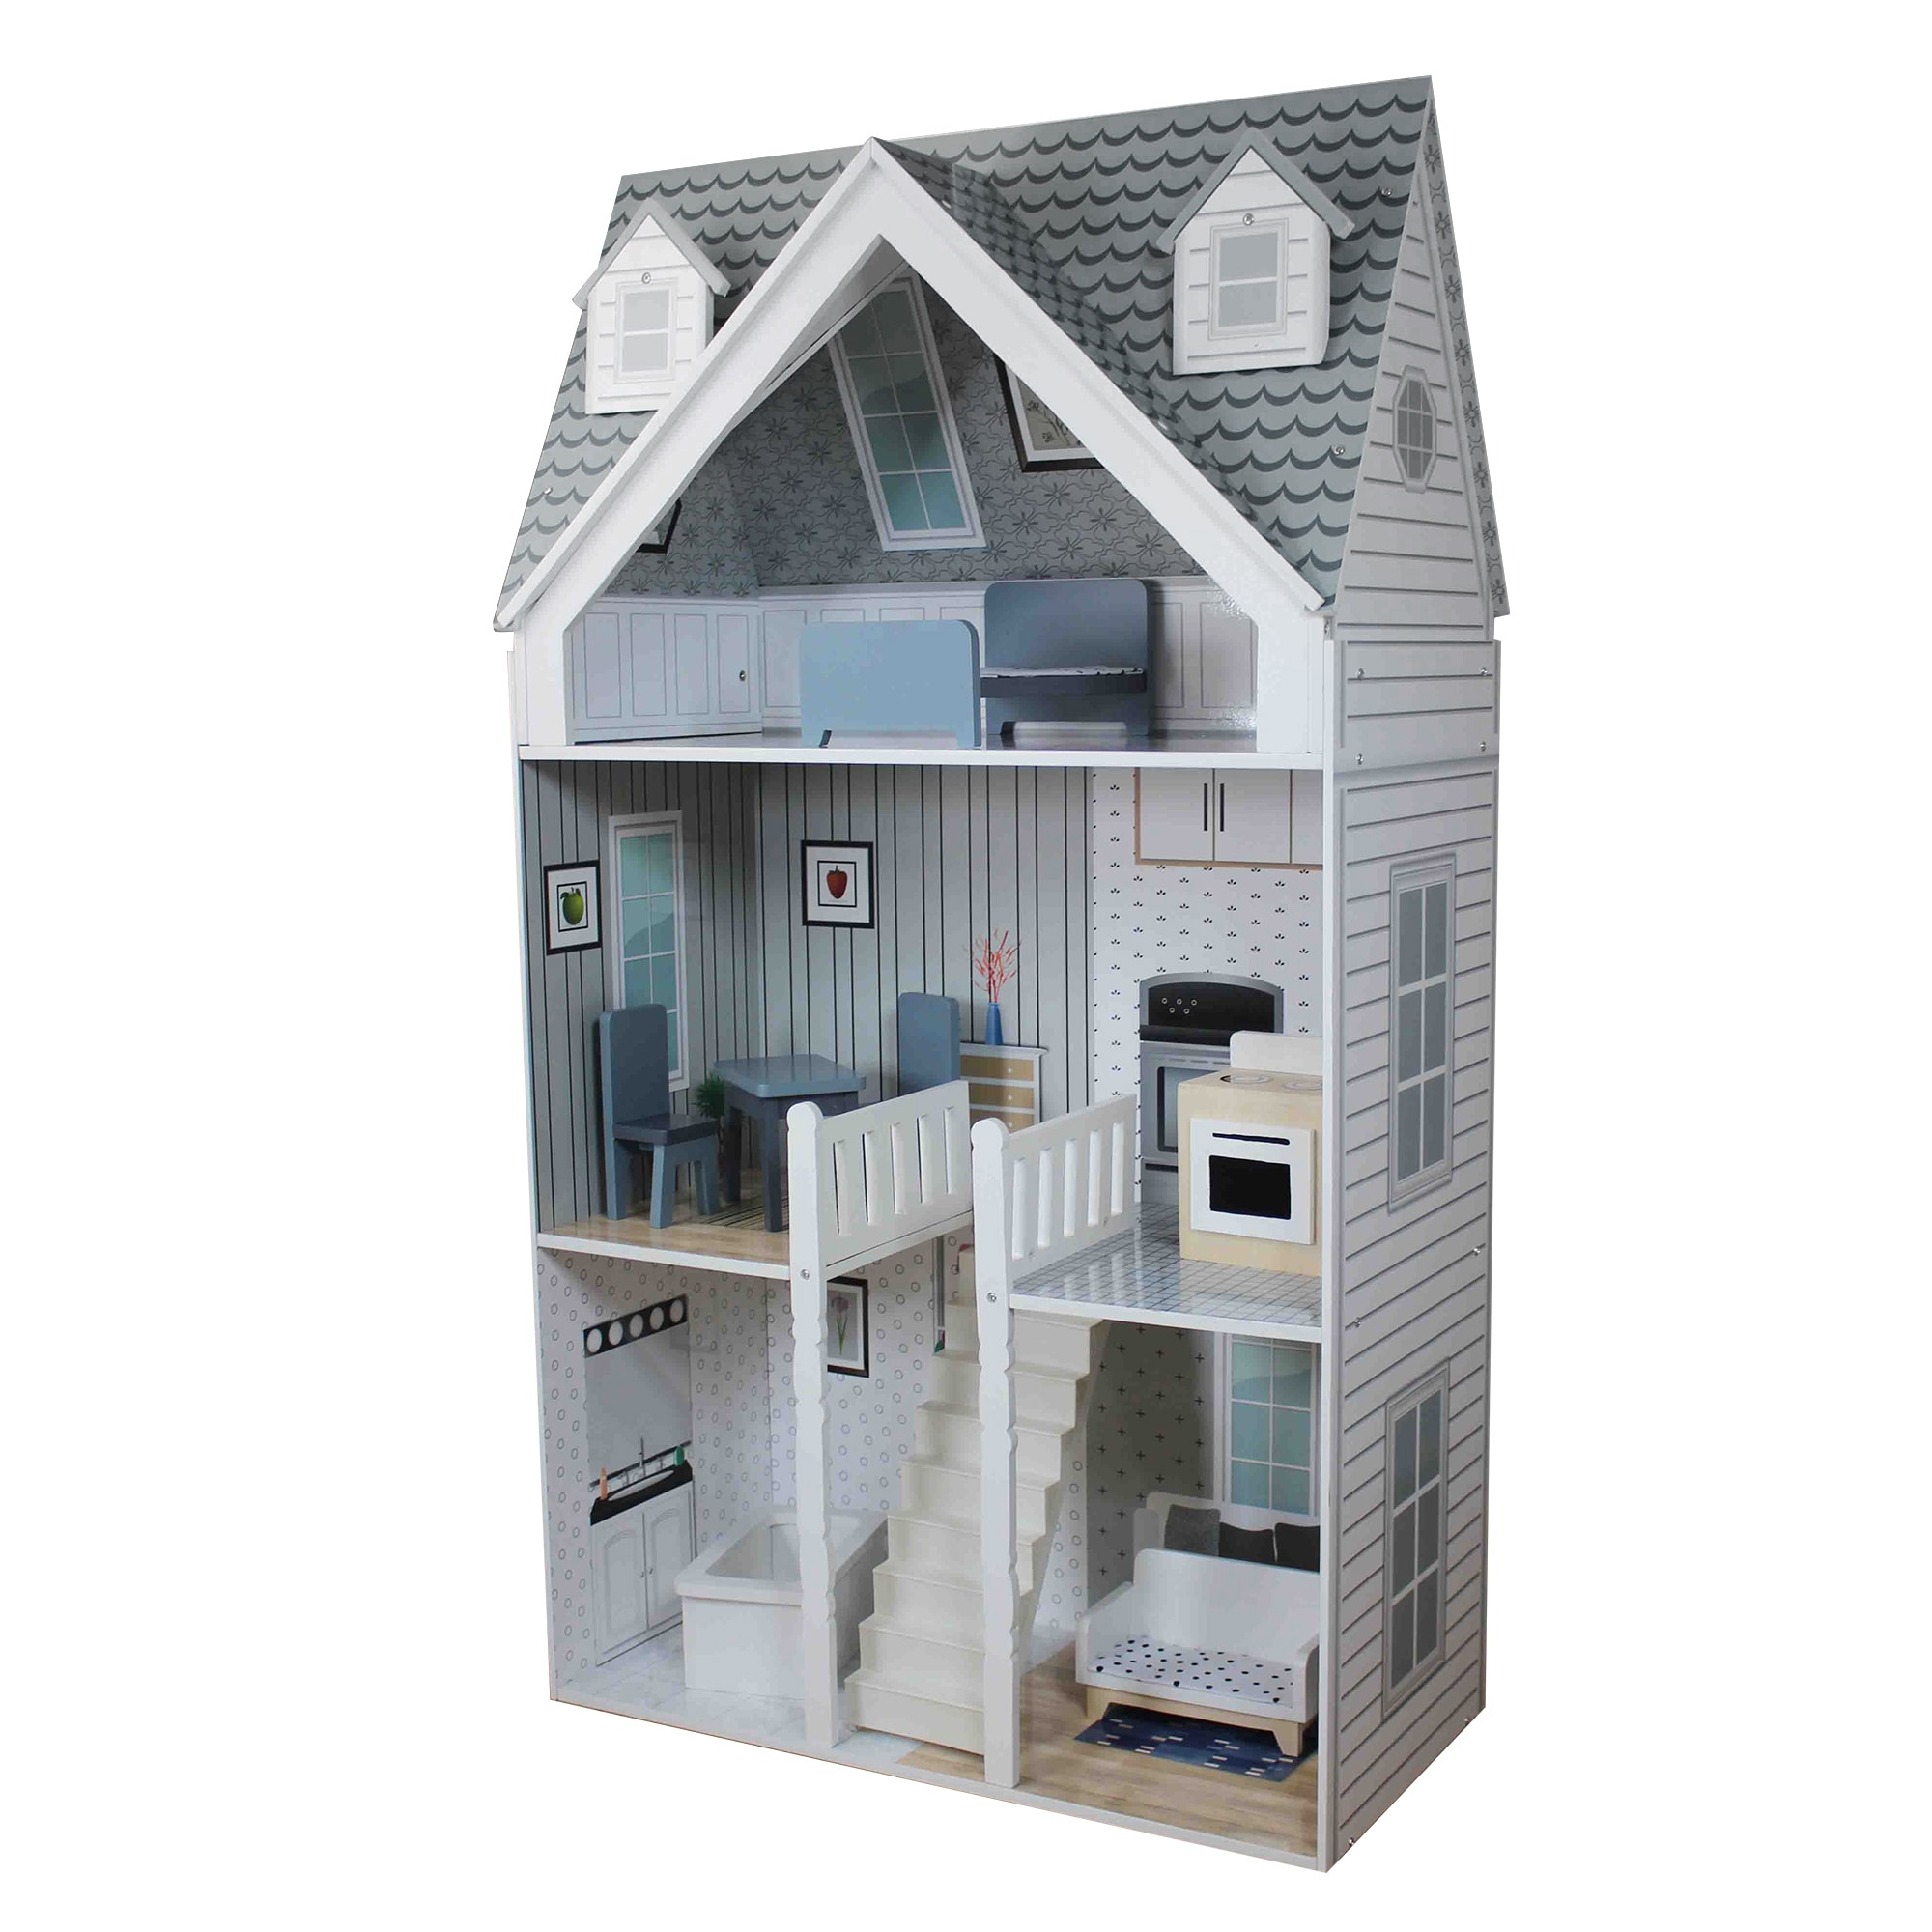 Teamson Kids Deluxe City Doll House for 11.5 Inch Dolls (...